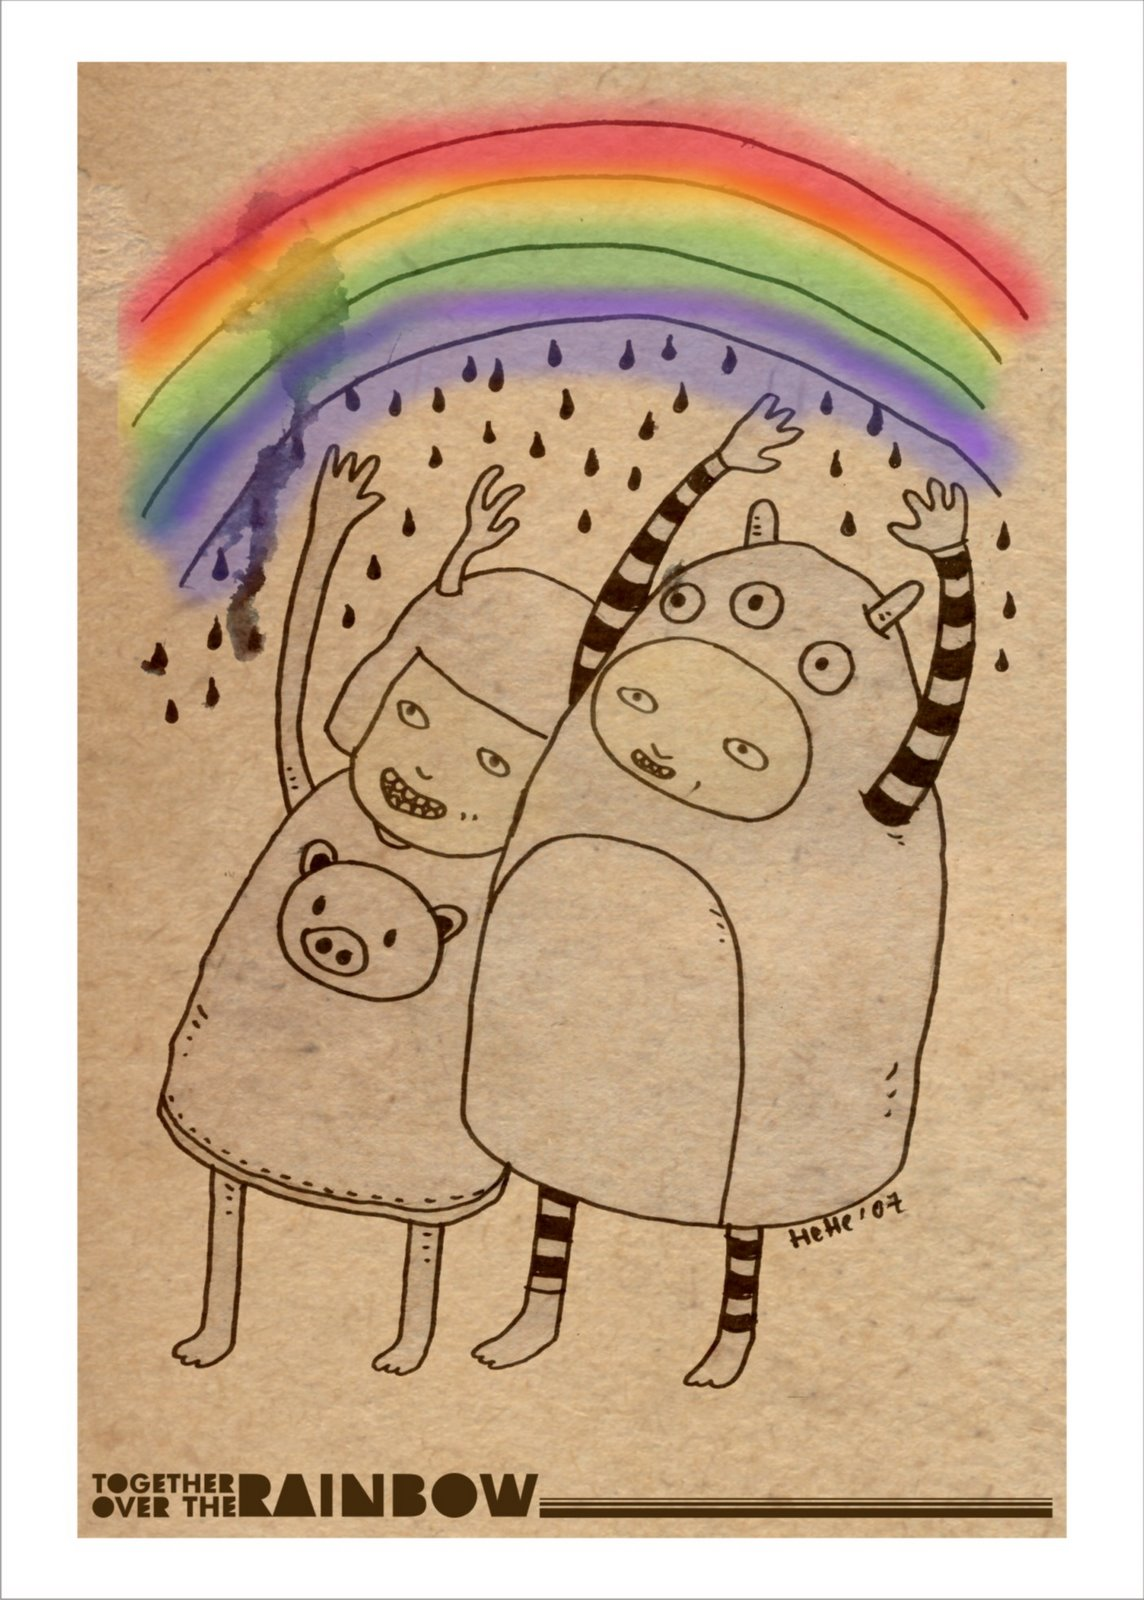 [together_over_the_rainbow_2.jpg]